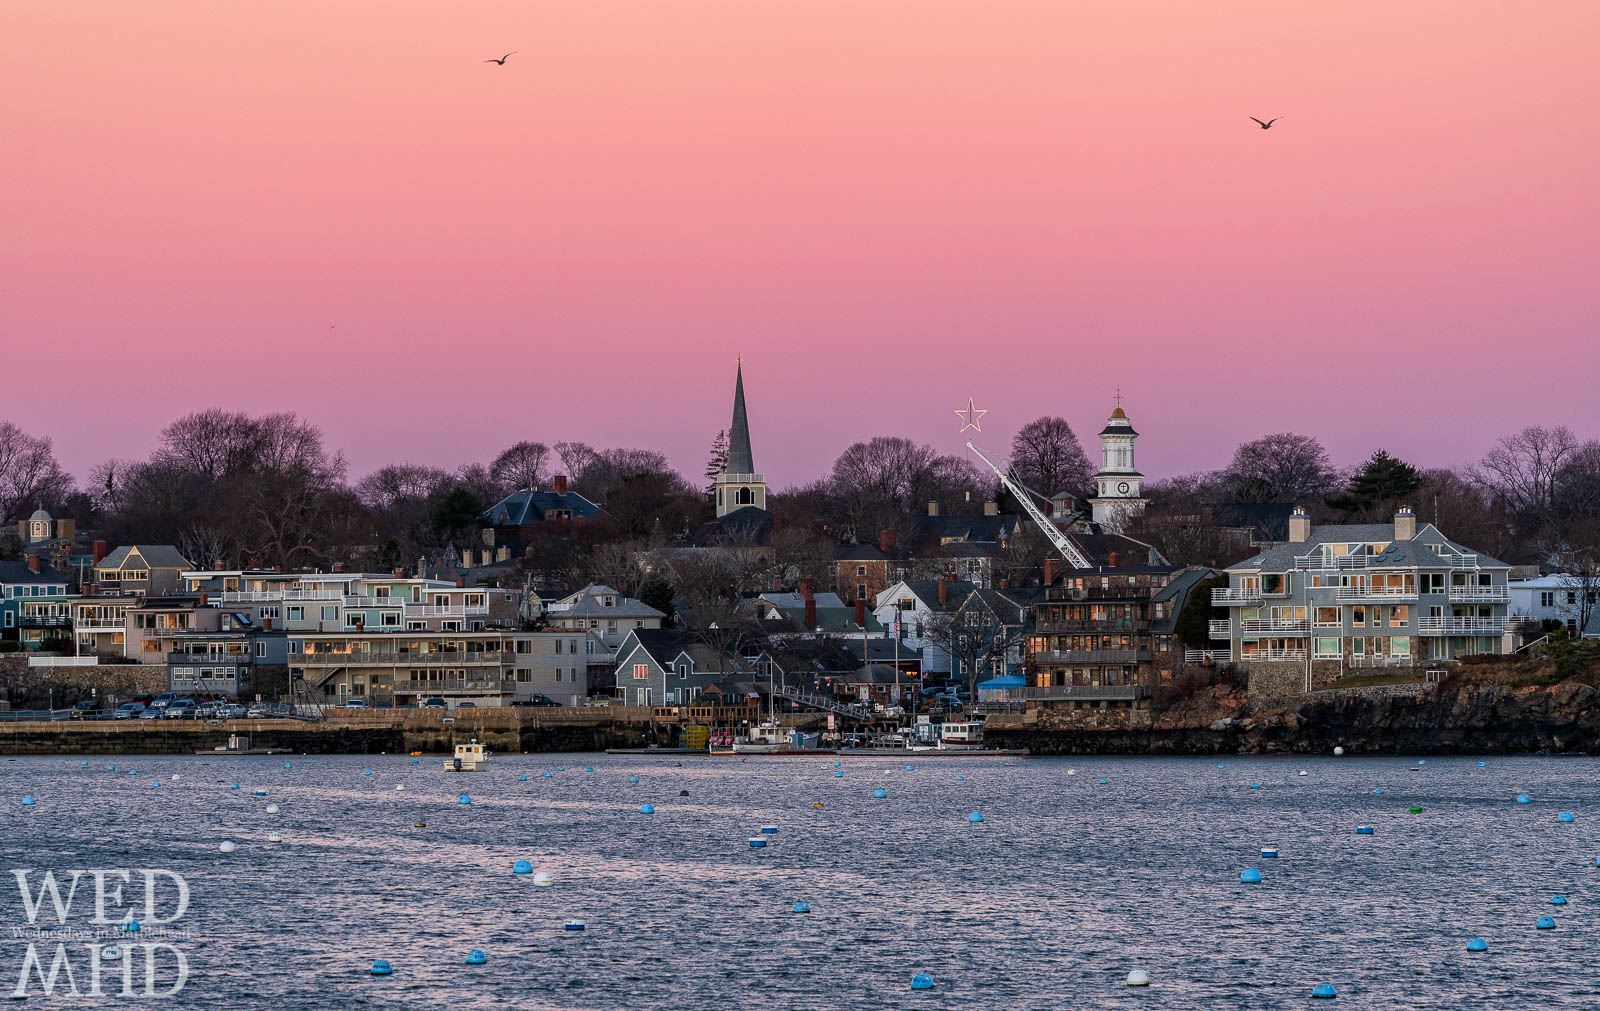 The shining star atop a crane at the State Street Landing is perfectly positioned between St. Michaels and Grace Community Church in this sunrise image